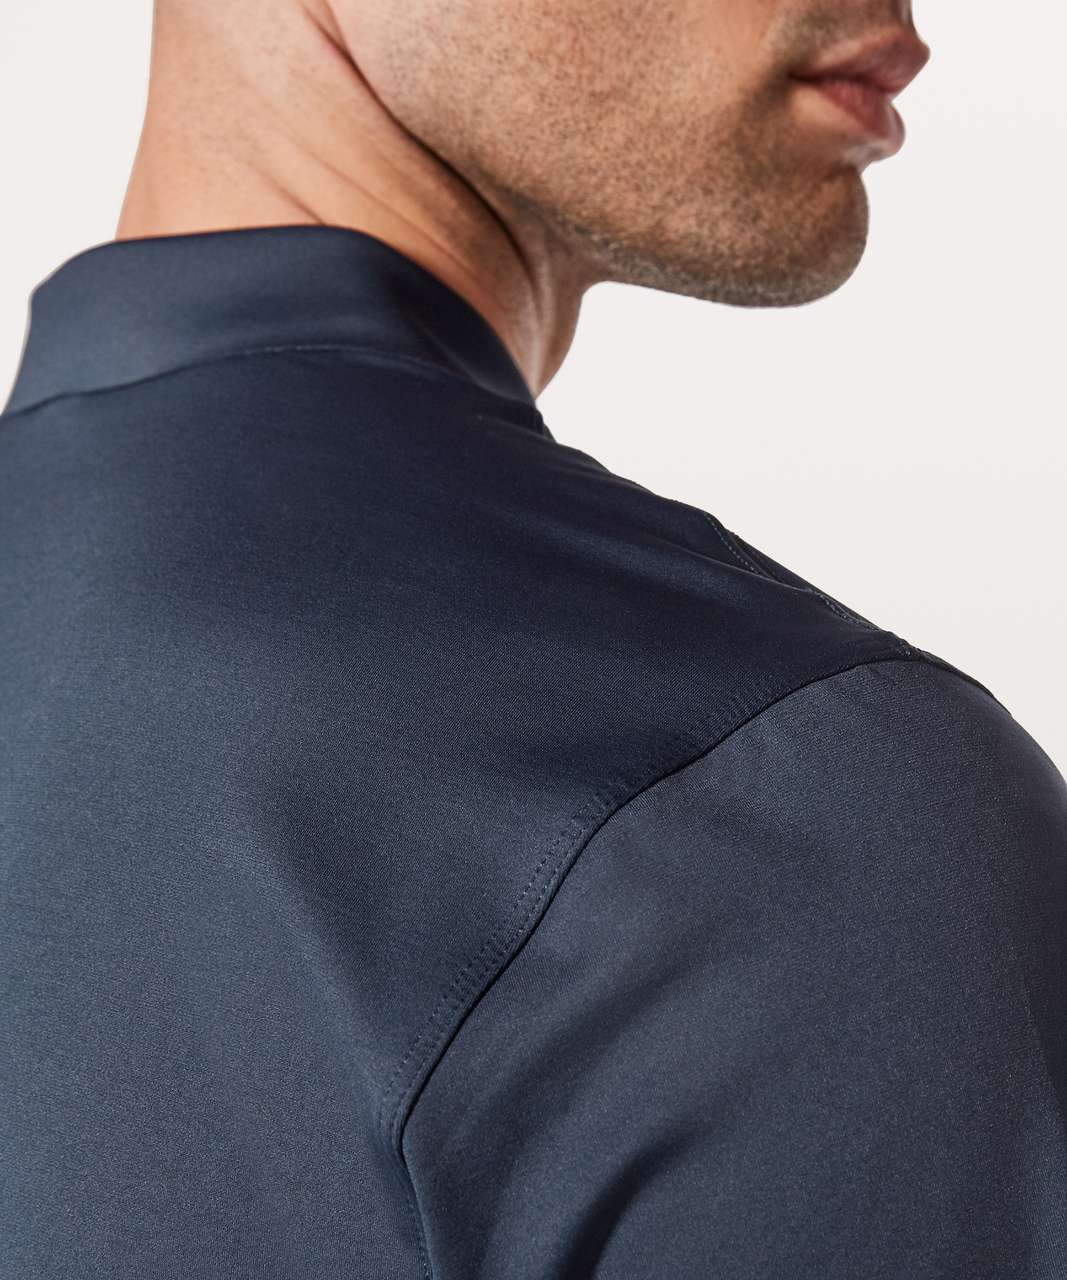 Lululemon Propel Polo - True Navy